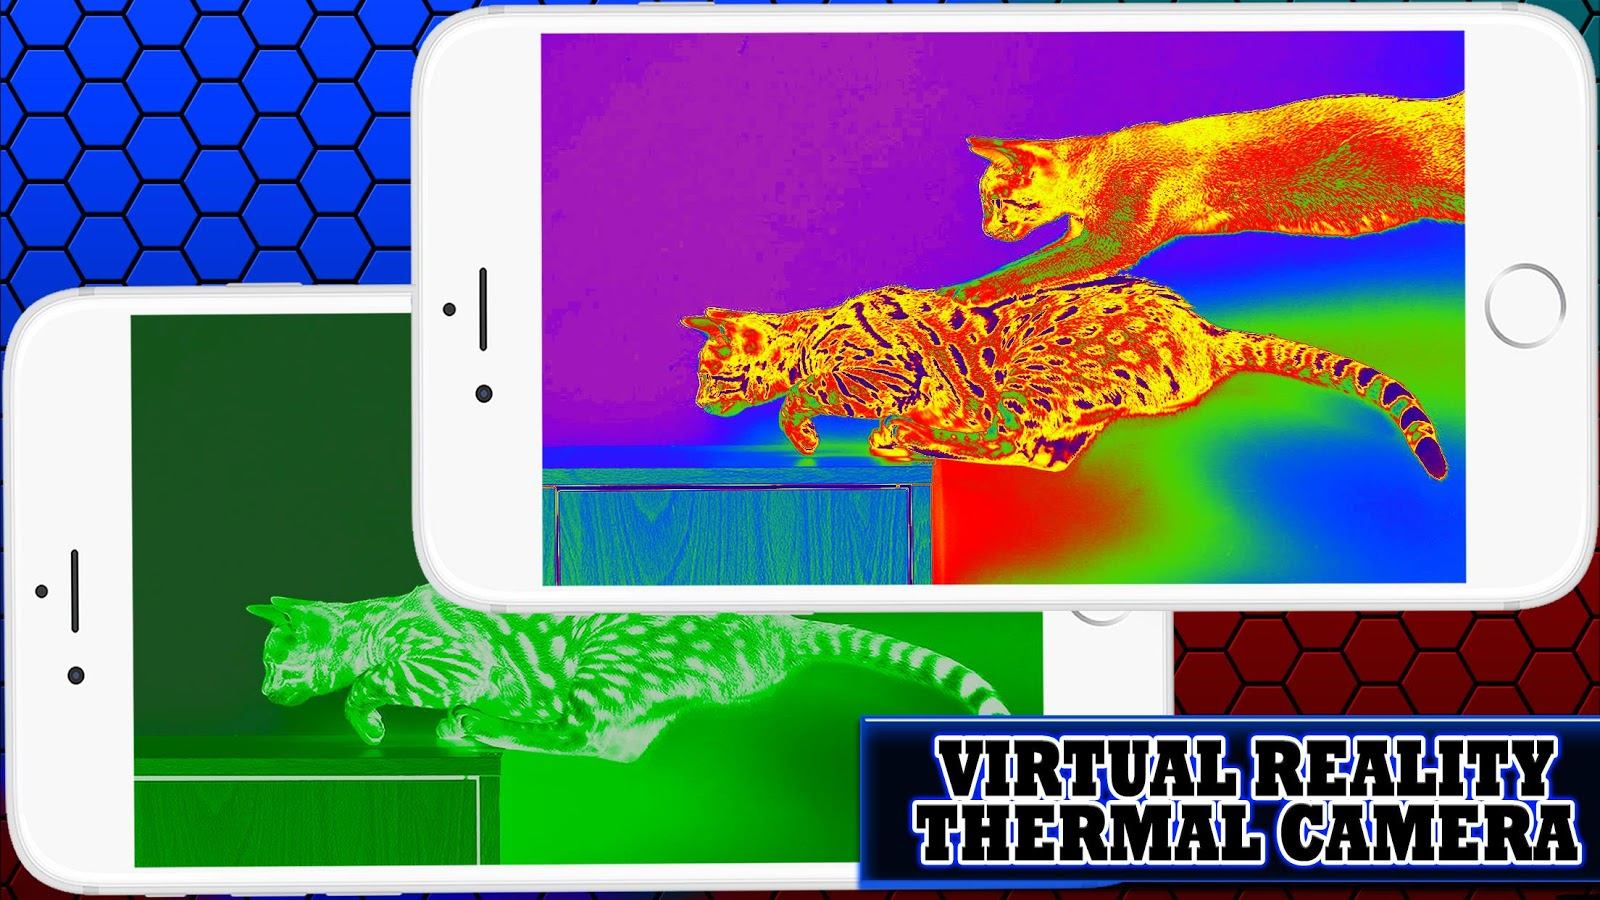 virtual reality thermal camera android apps on google play. Black Bedroom Furniture Sets. Home Design Ideas